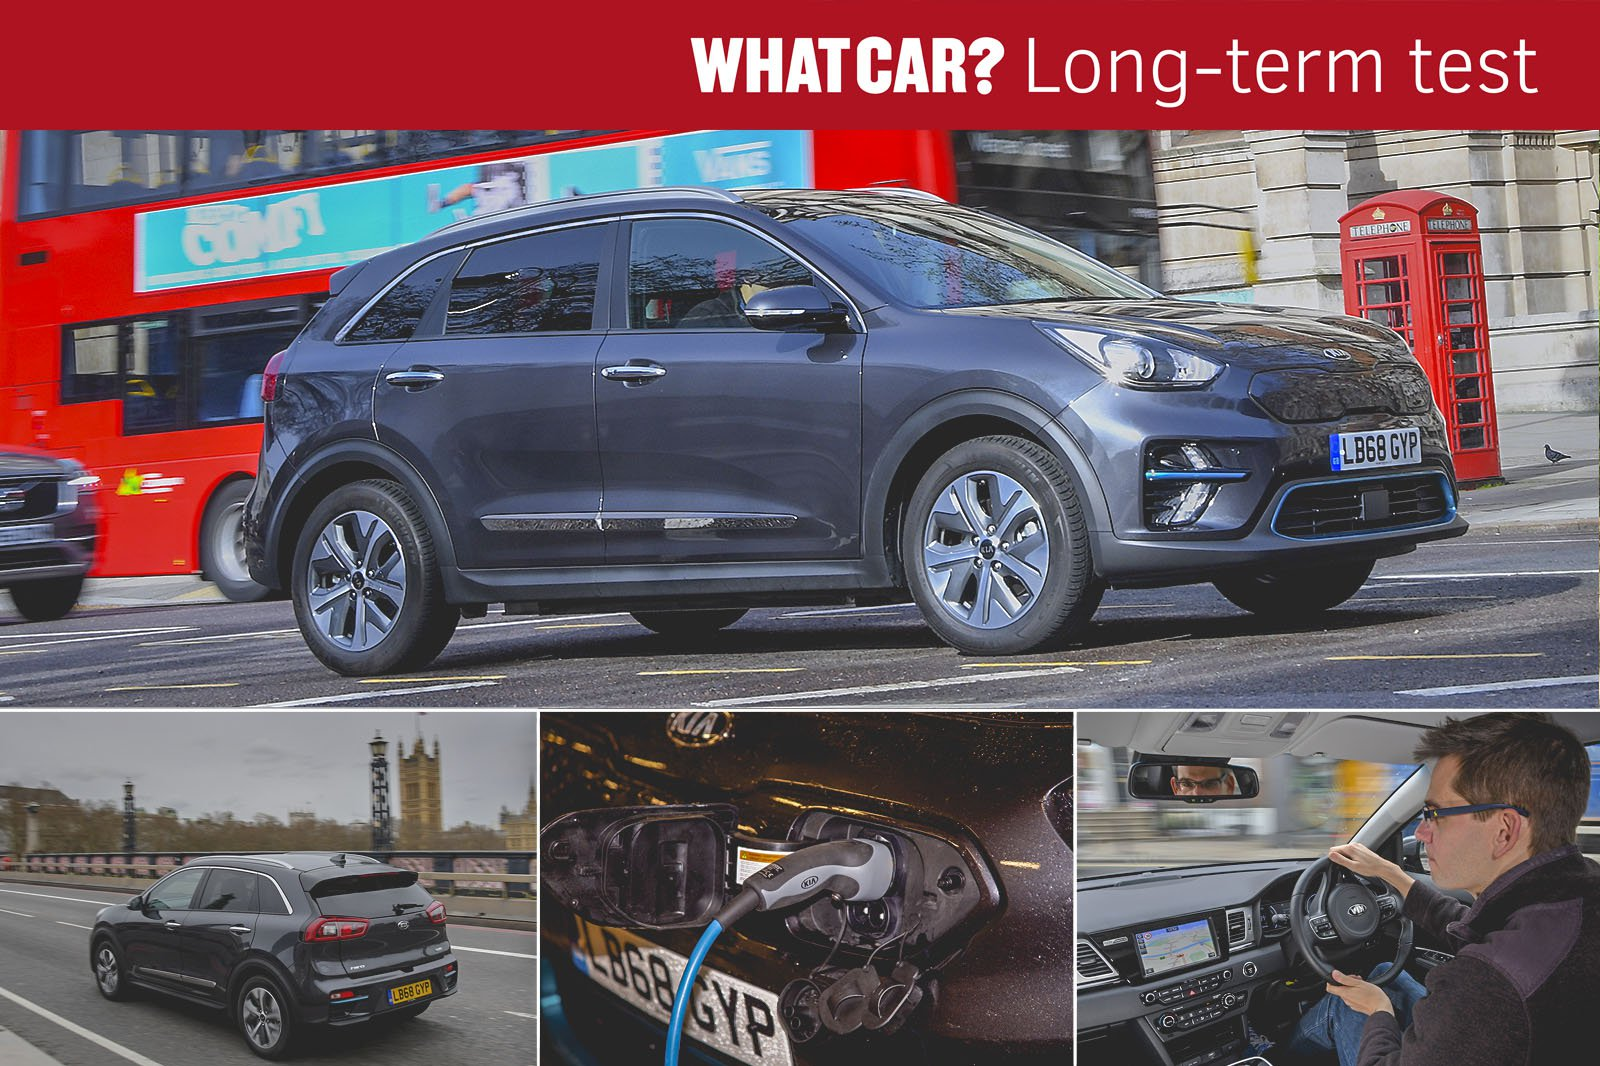 Kia e-Niro long-term test